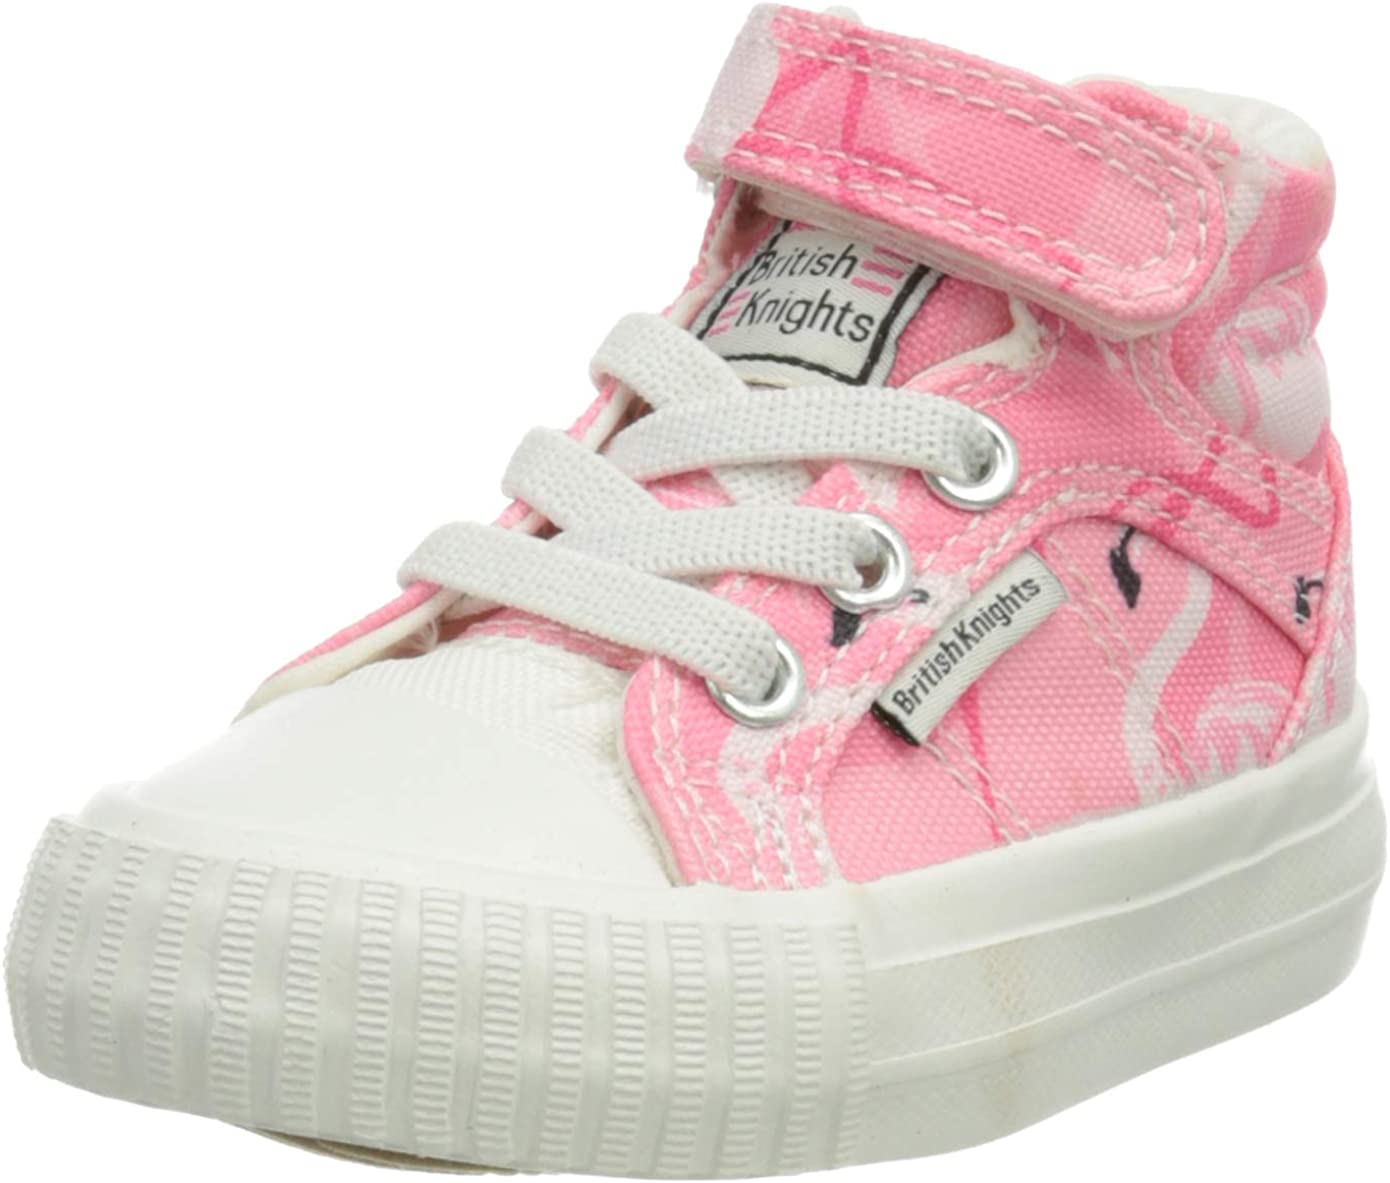 Superior Sales for sale British Knights Girl's Sneakers Low-Top